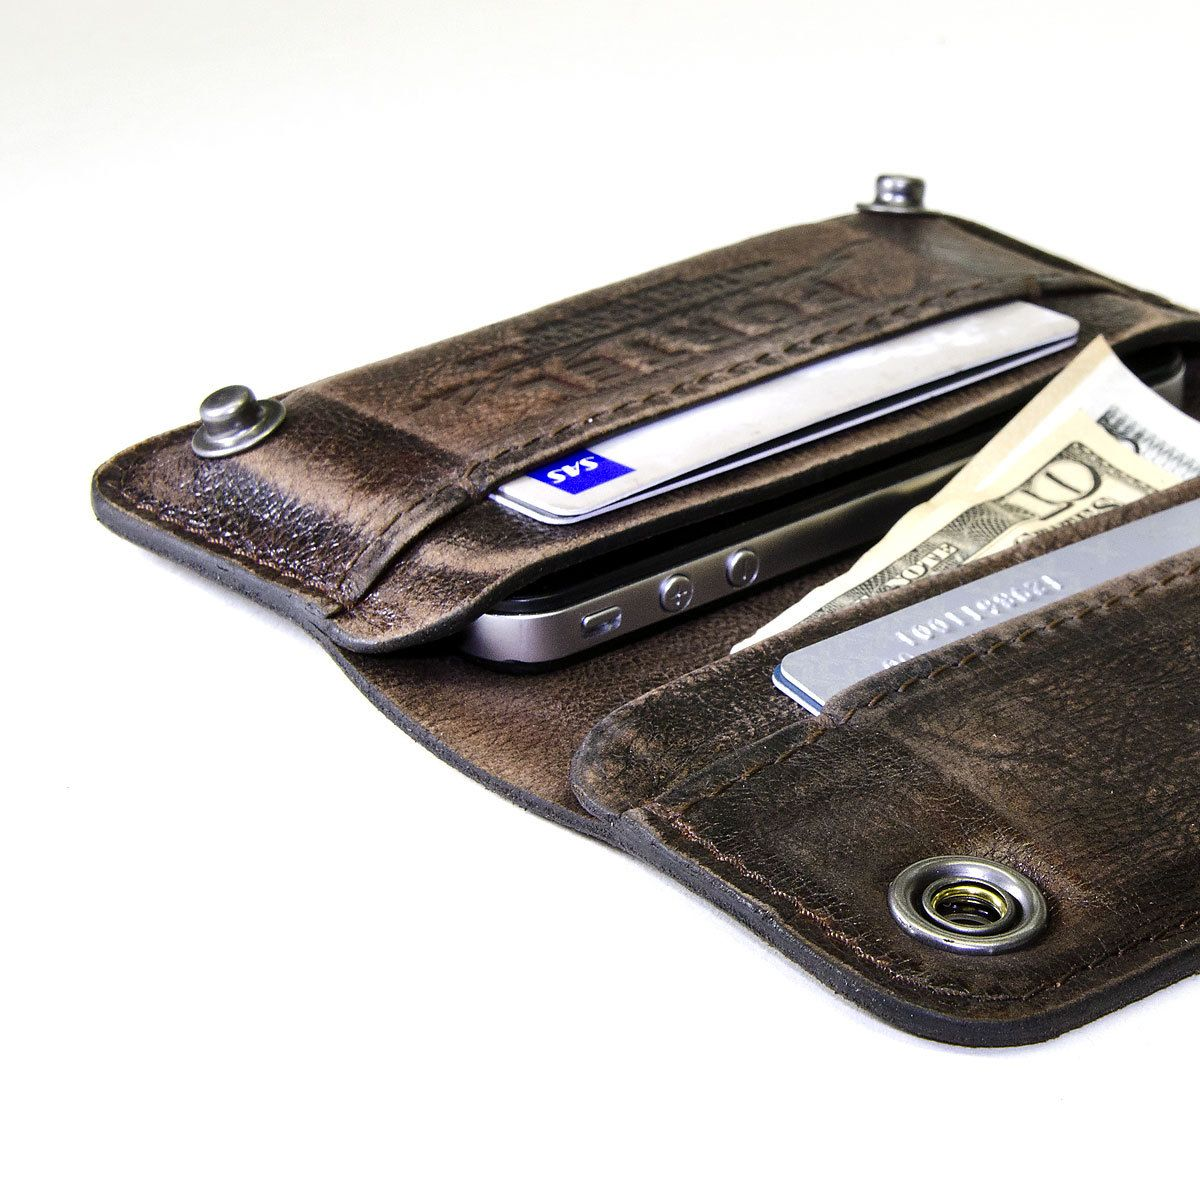 iPhone / iPod Touch - - RETROMODERN aged leather wallet